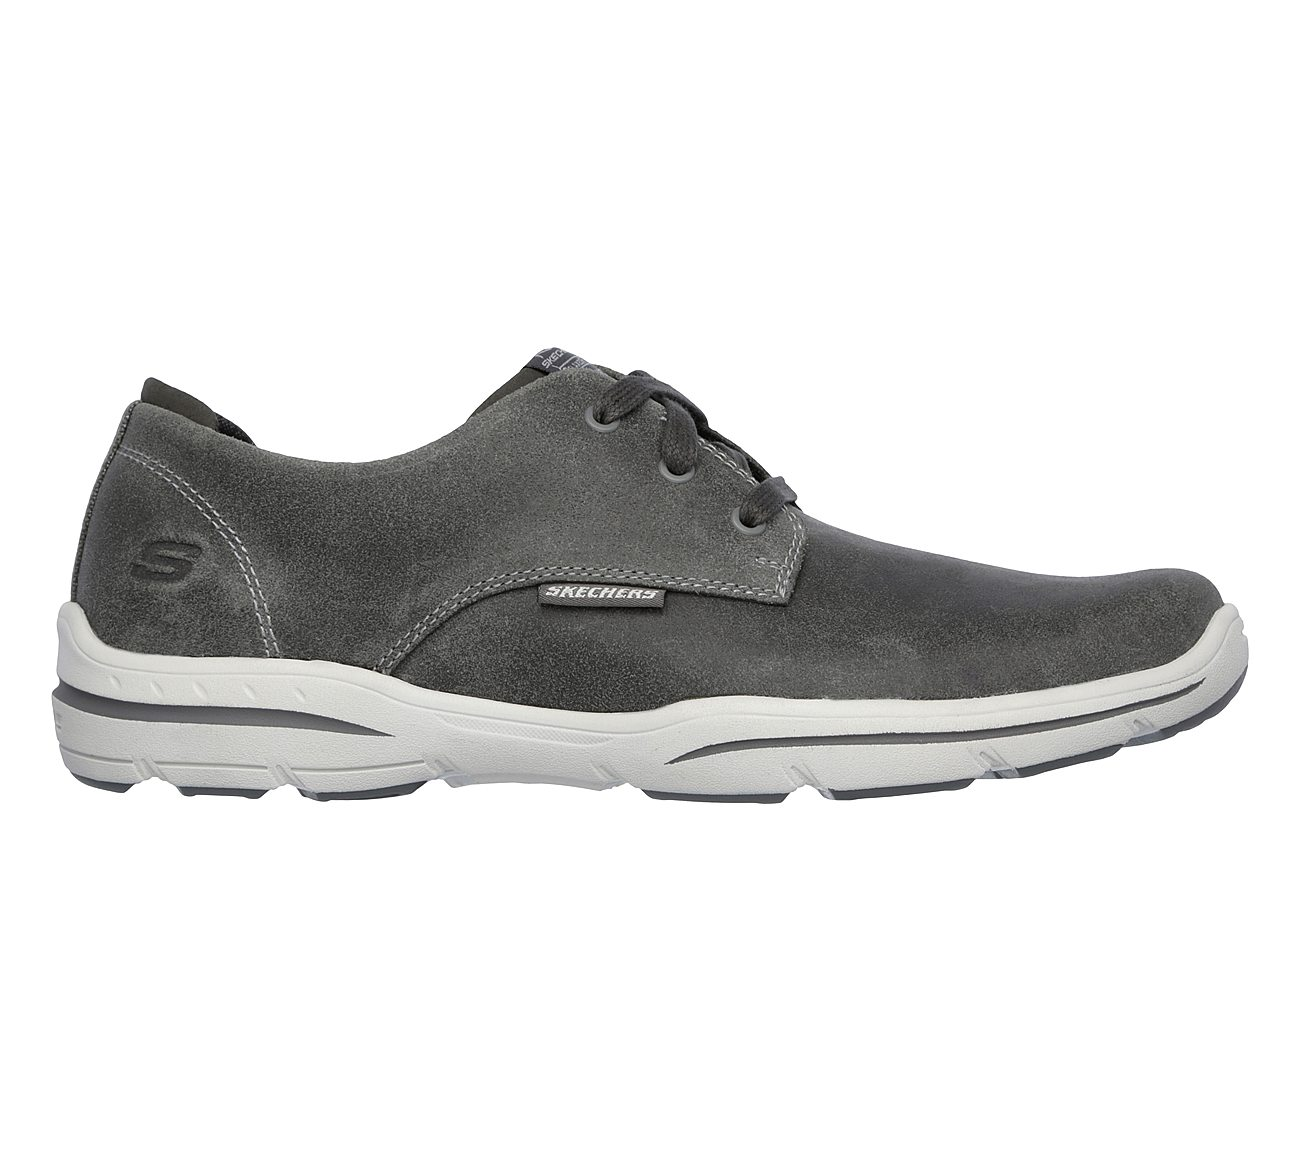 d4703824874b Buy SKECHERS Relaxed Fit  Harper - Epstein USA Casuals Shoes only  85.00